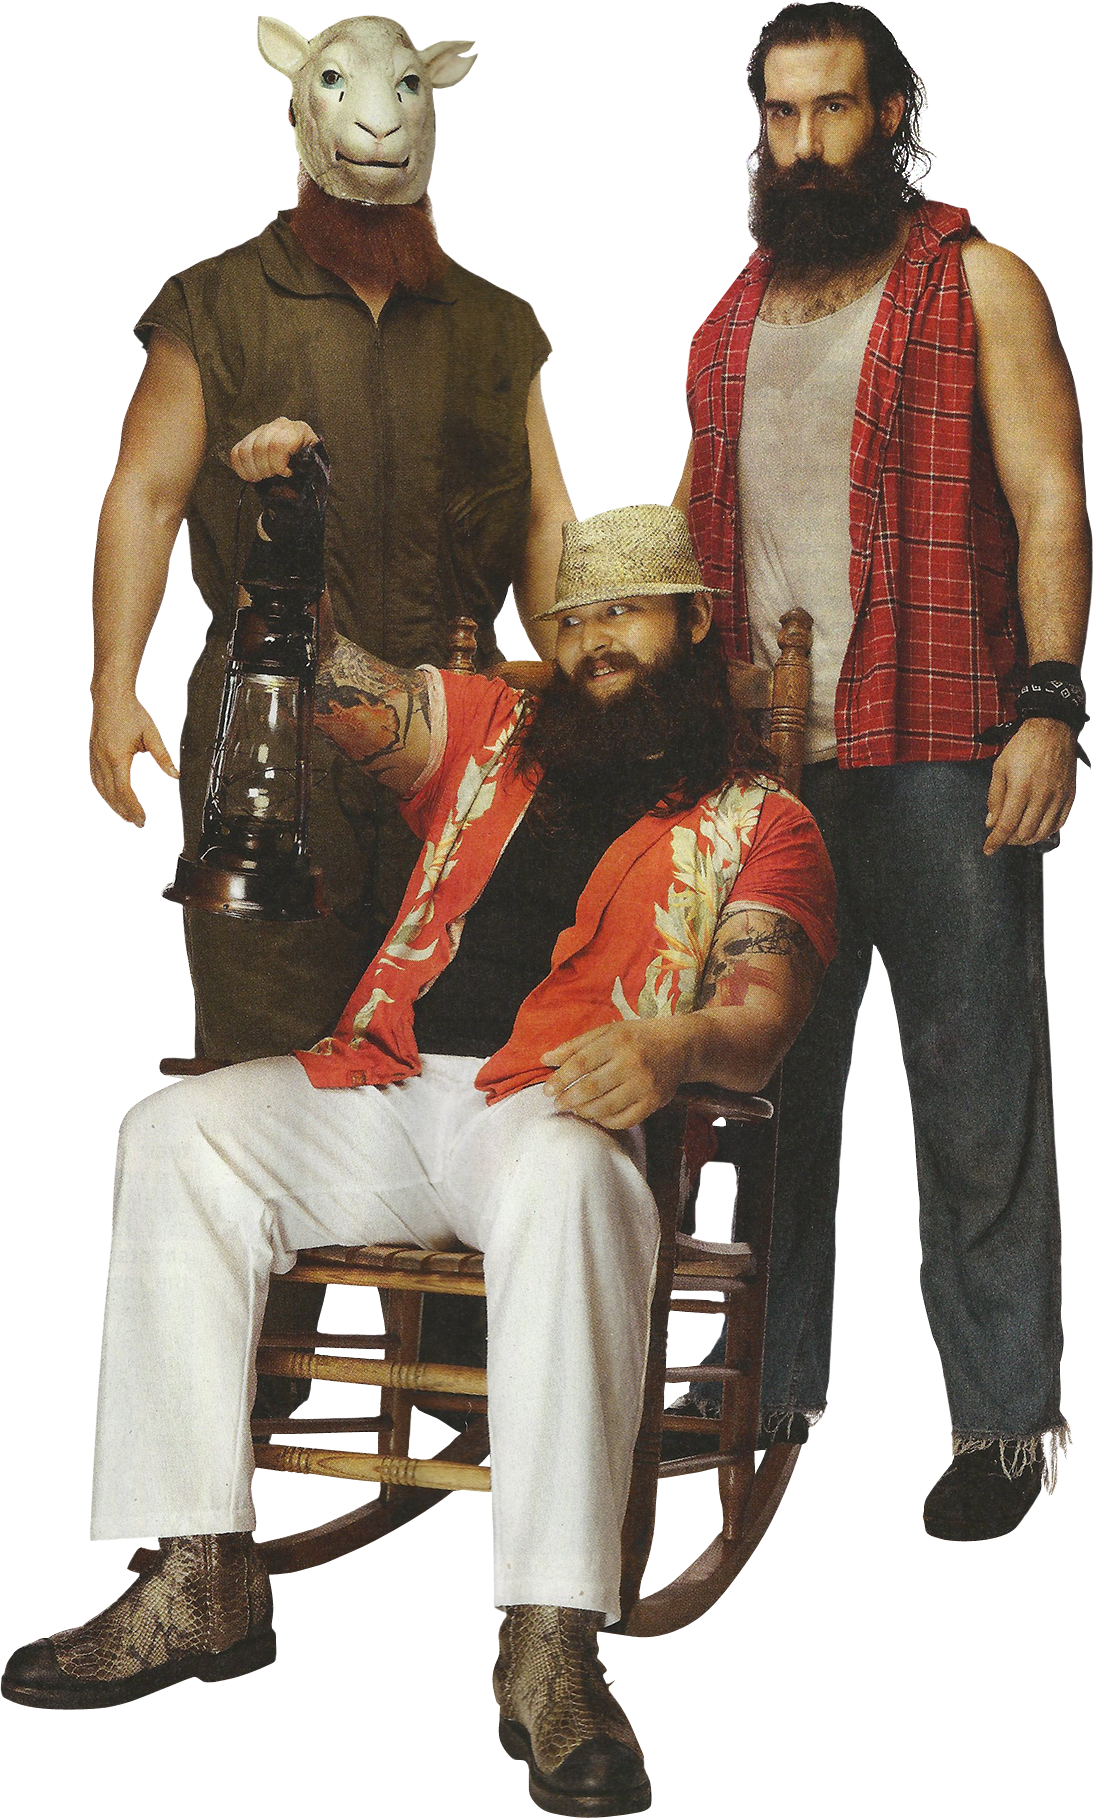 Png Family Of 6 - Image   The Wyatt Family 6.png | Pro Wrestling | Fandom Powered By Wikia, Transparent background PNG HD thumbnail